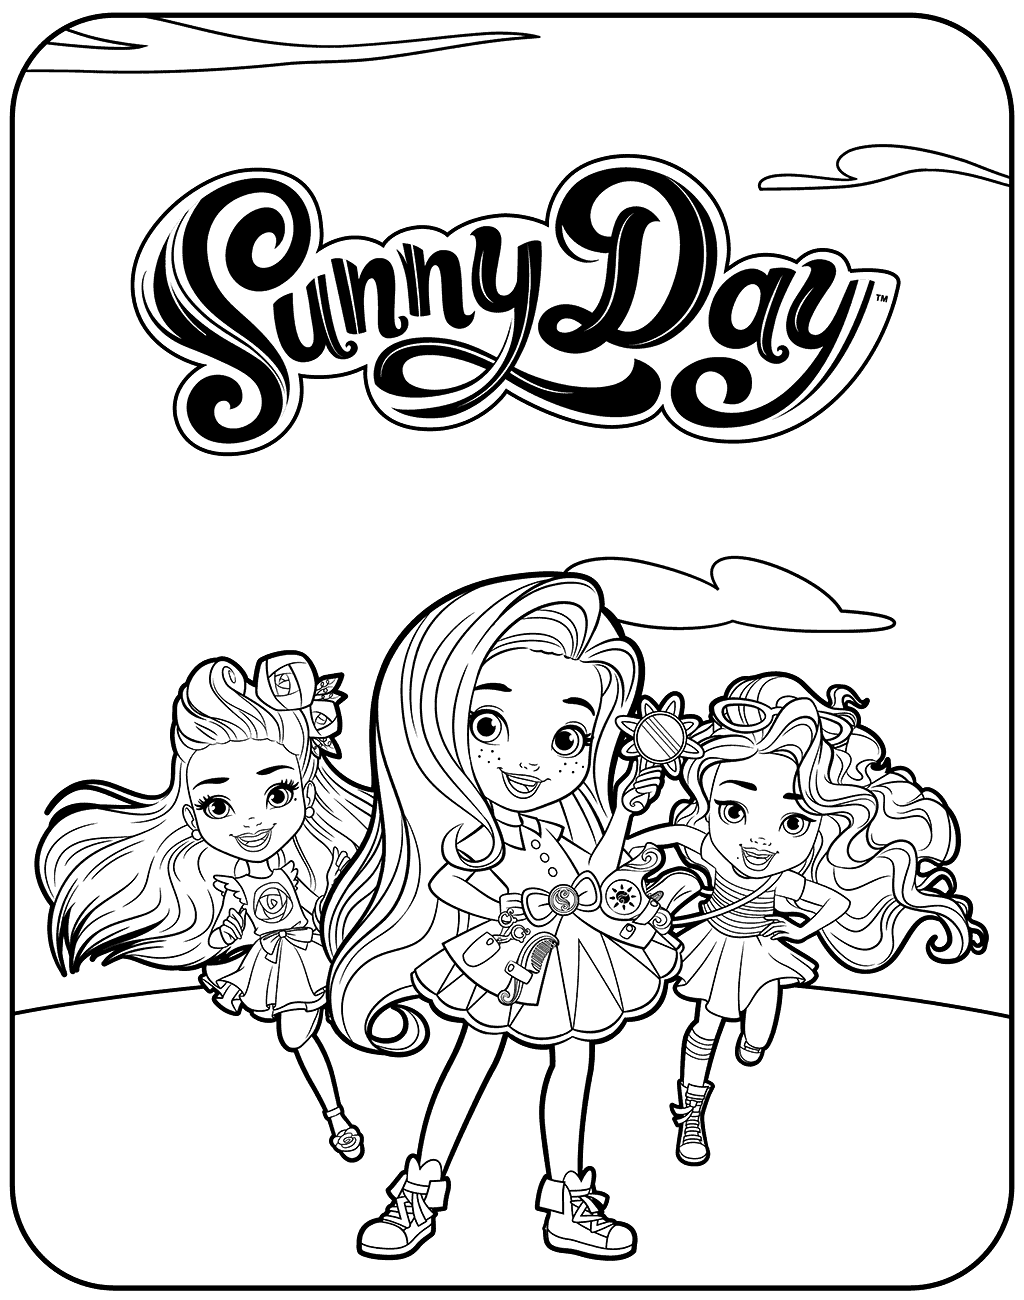 Nickelodeon Sunny Day Coloring